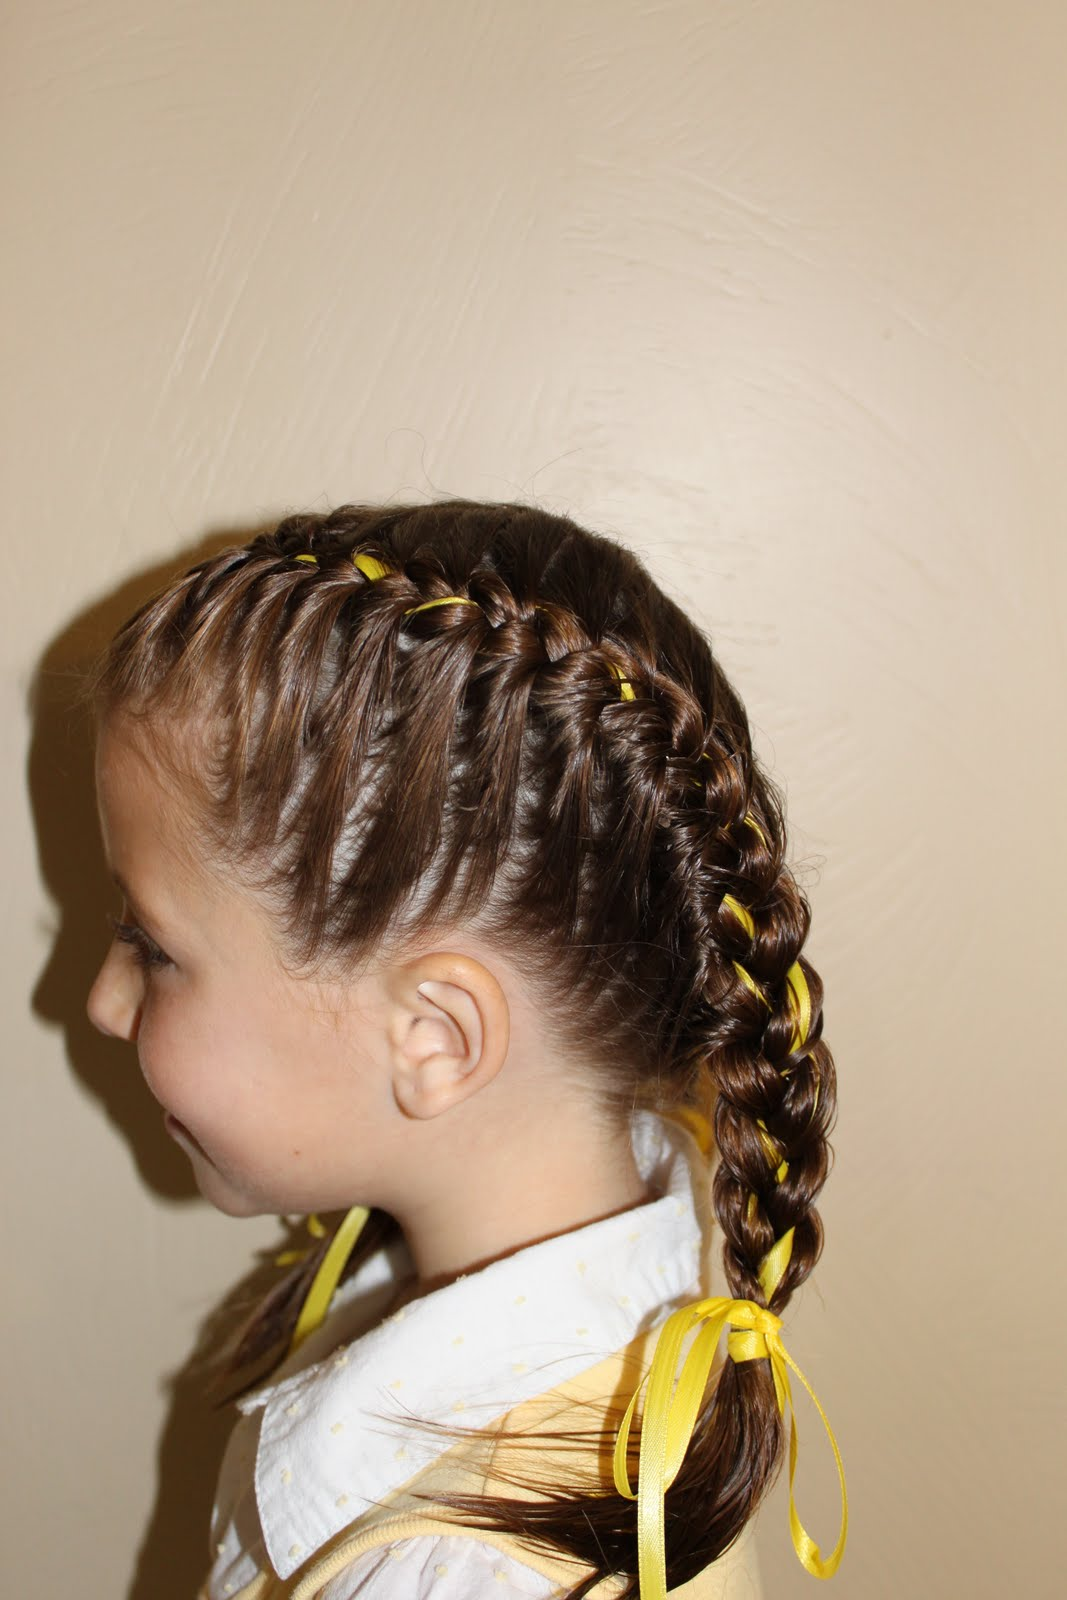 26 Braided Hairstyles For Teens: 26 Stupendous Braided Hairstyles For Kids